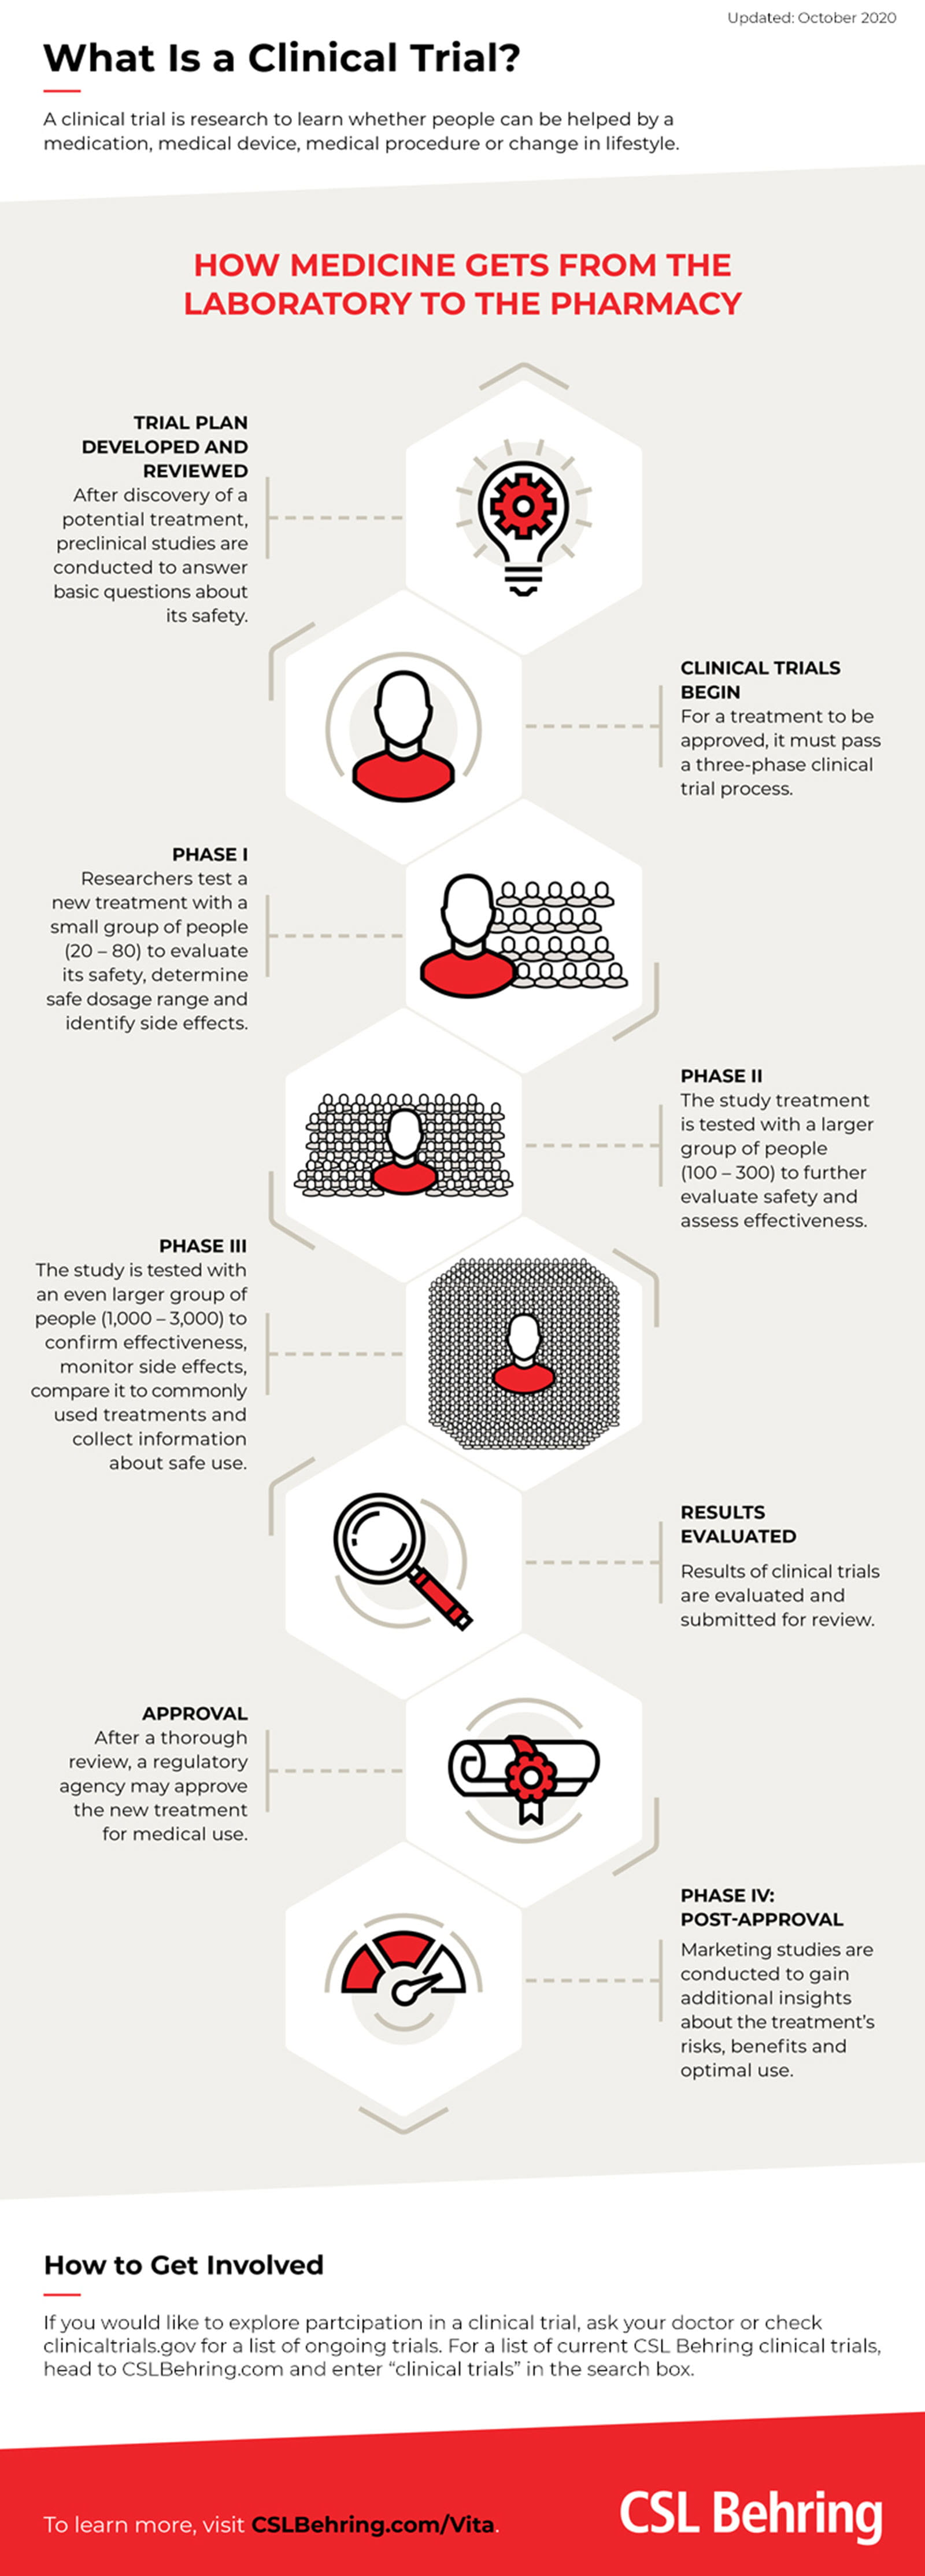 Infographic on biotechnology clinical trials